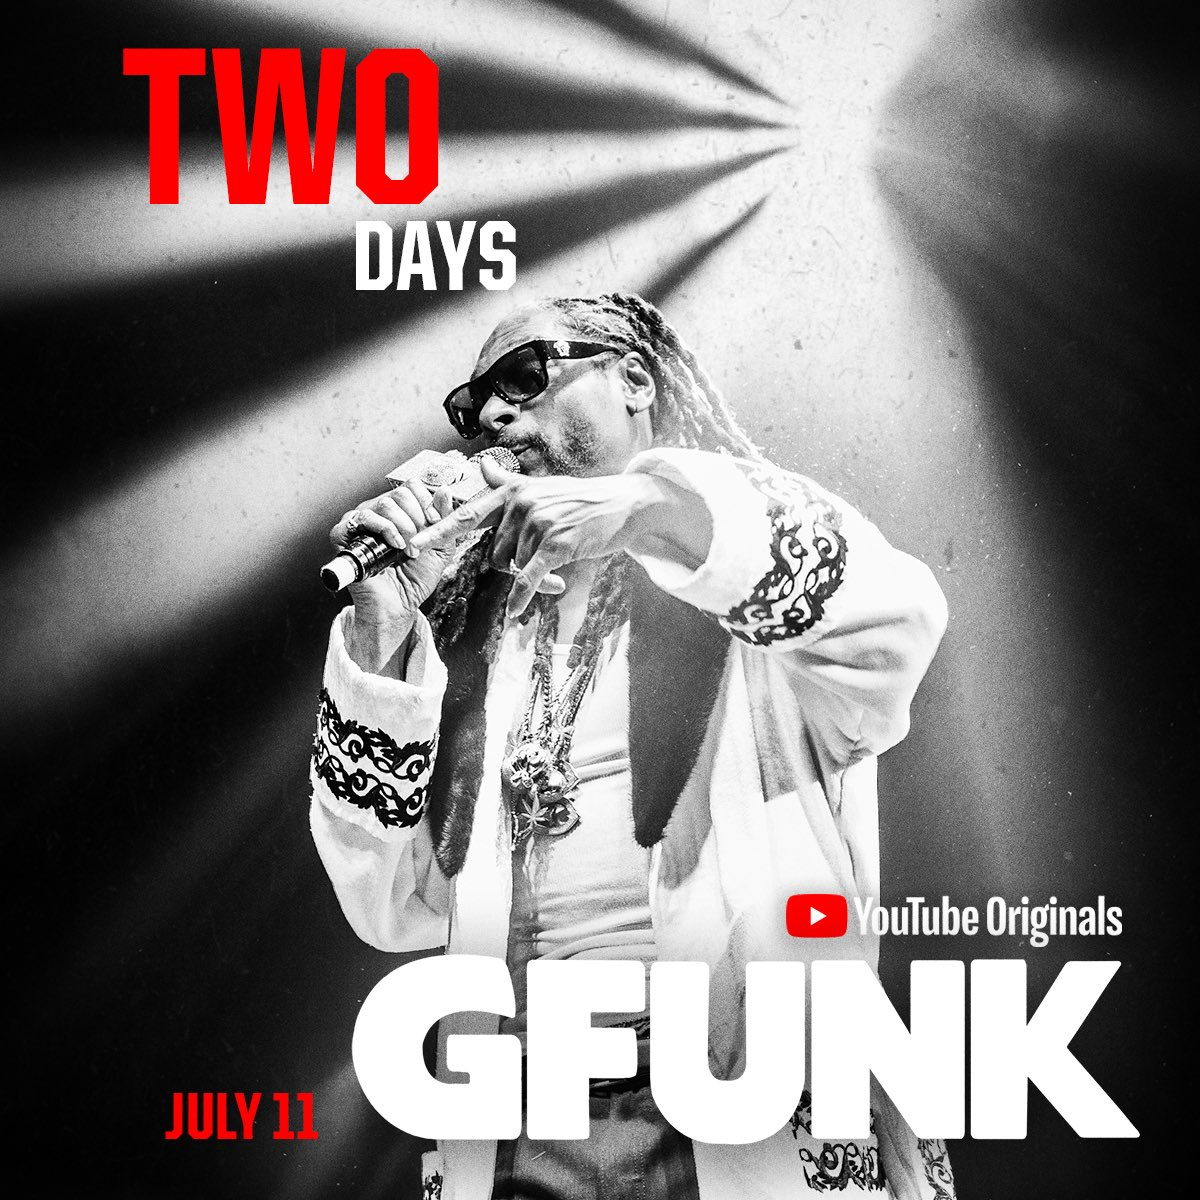 2 more days ✨ me n @regulator bringin it back to the 90s ???????? #GFunkDoc on @YouTube July 11 https://t.co/chUJB5Ffyf